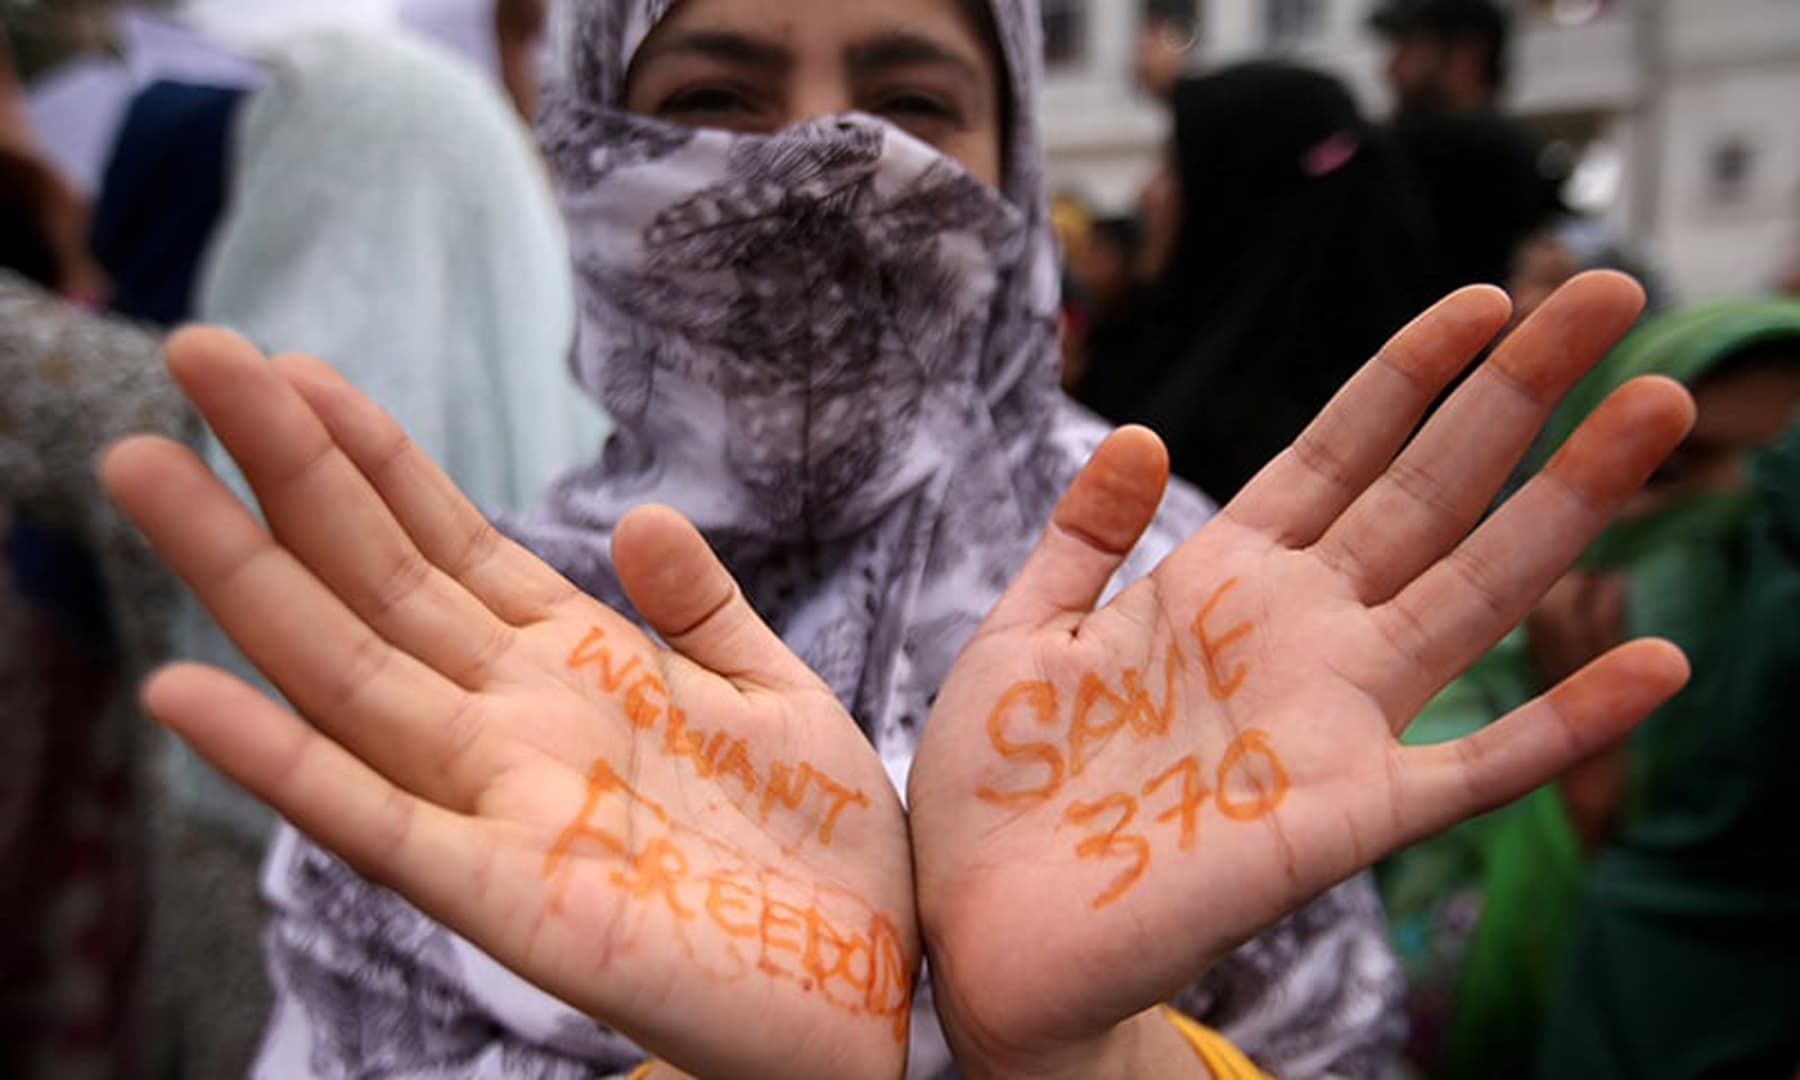 A Kashmiri woman shows her hands with messages at a protest after Friday prayers during restrictions in Srinagar, August 16. — Reuters